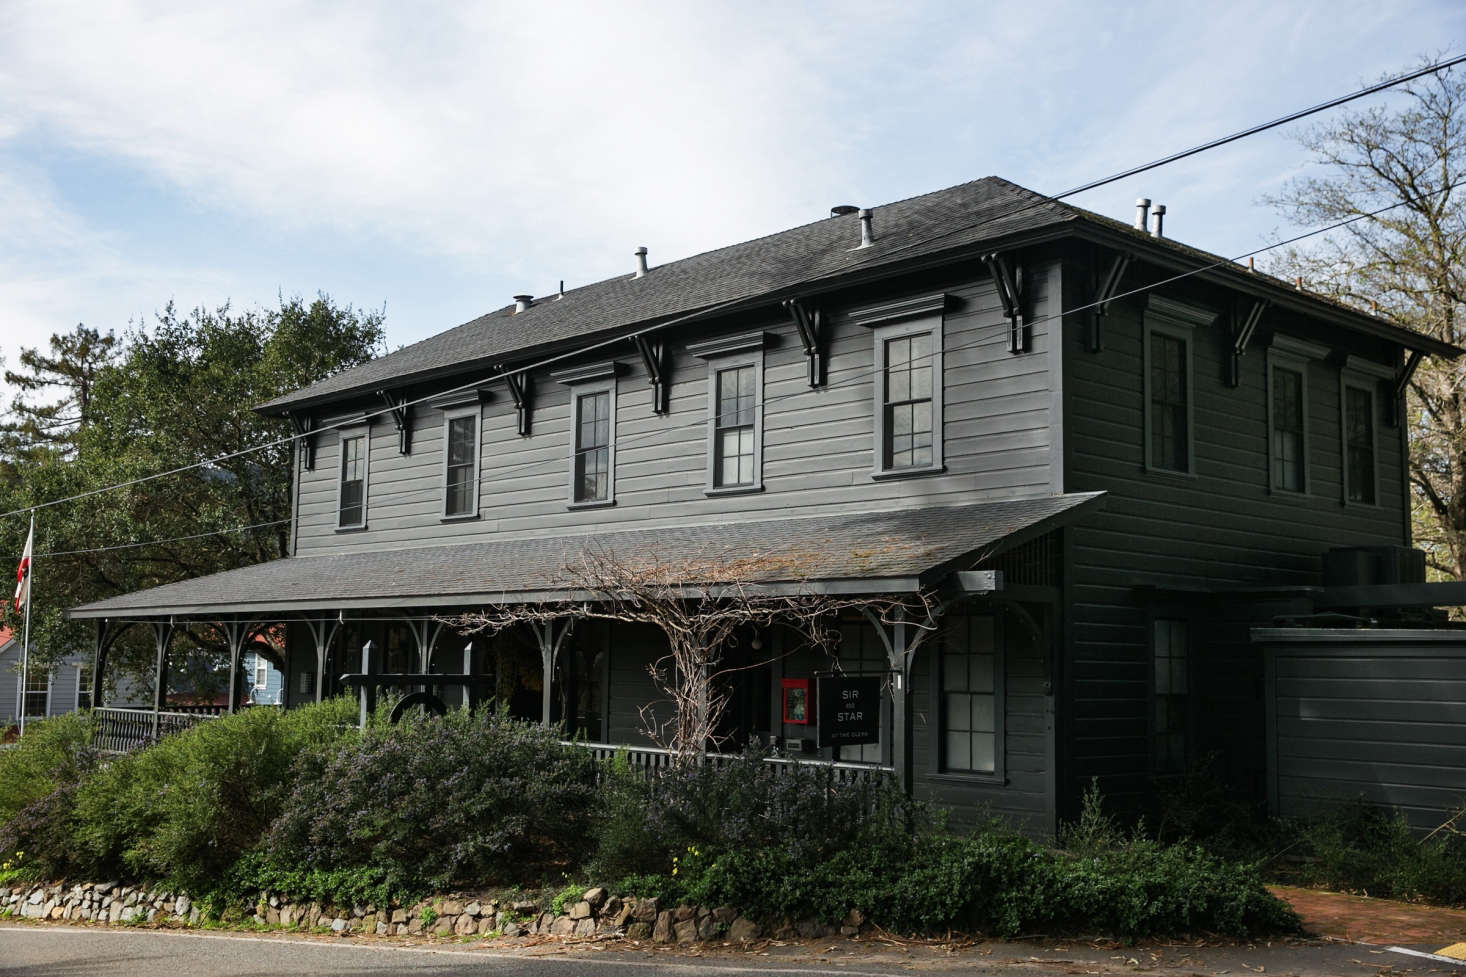 The Building S Exterior Is Painted In Benjamin Moore Black Panther A Flat Finish With